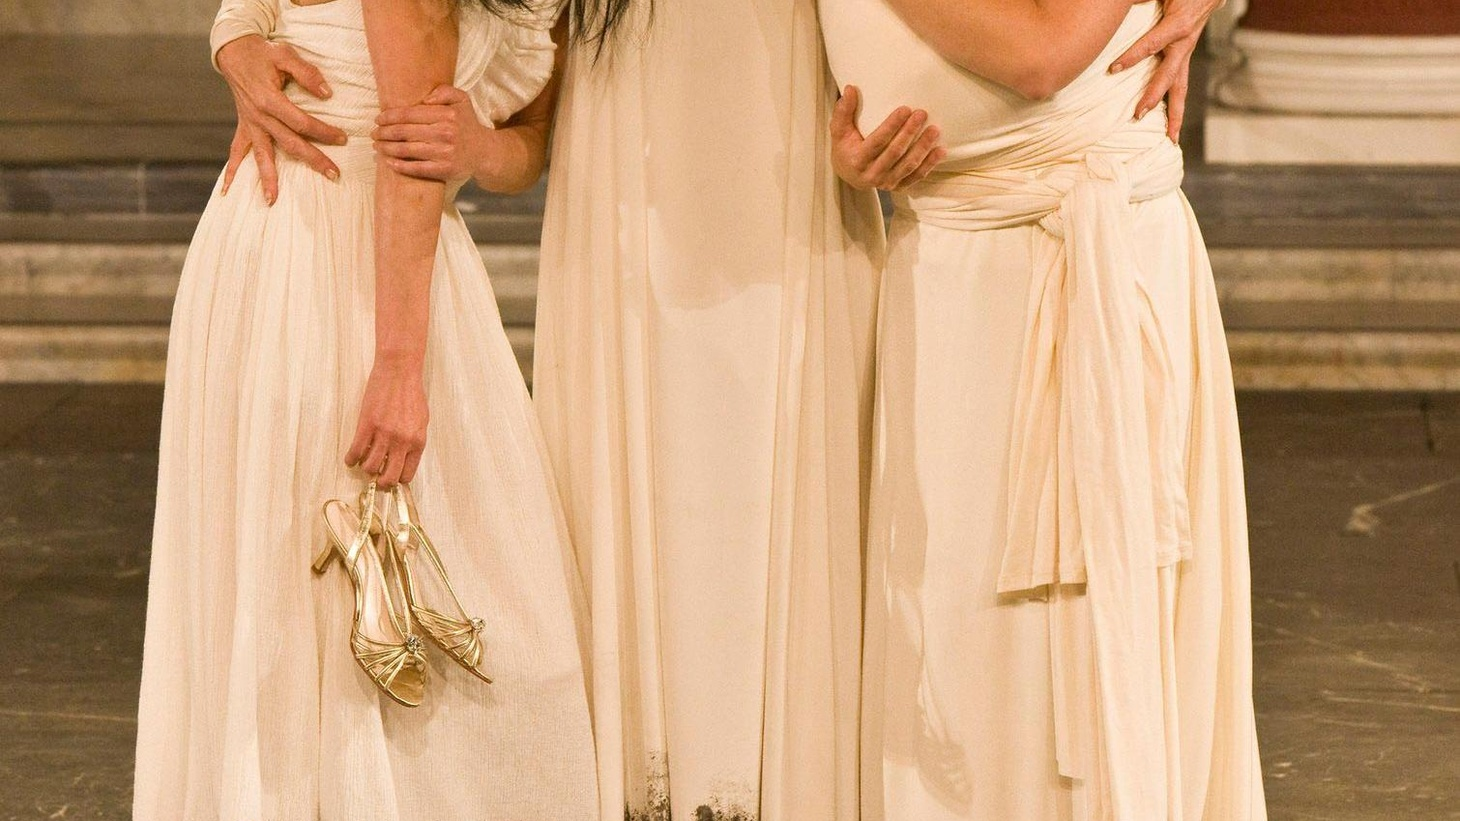 Trojan Women, written by Euripedes 2,400 years ago, is one of the most brutal, unrelenting anti-war plays ever created. The play takes place among the wreckage of Troy...